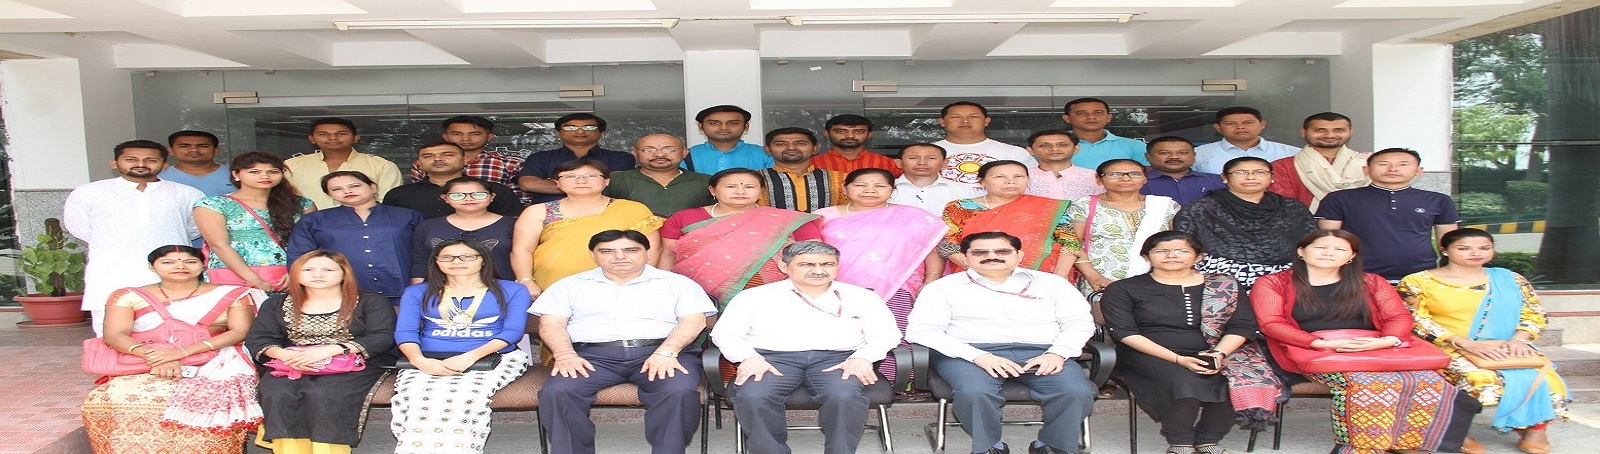 VVGNLI organised a Training Programme on 'SOCIAL PROTECTION AND LIVELIHOOD SECURITY FOR NORTH-EASTERN STATES' on May 07th - 11th, 2018. Thirty two participants from the North-Eastern states participated. Shri Rajit Punhani IAS, Director General, DGLW, Min